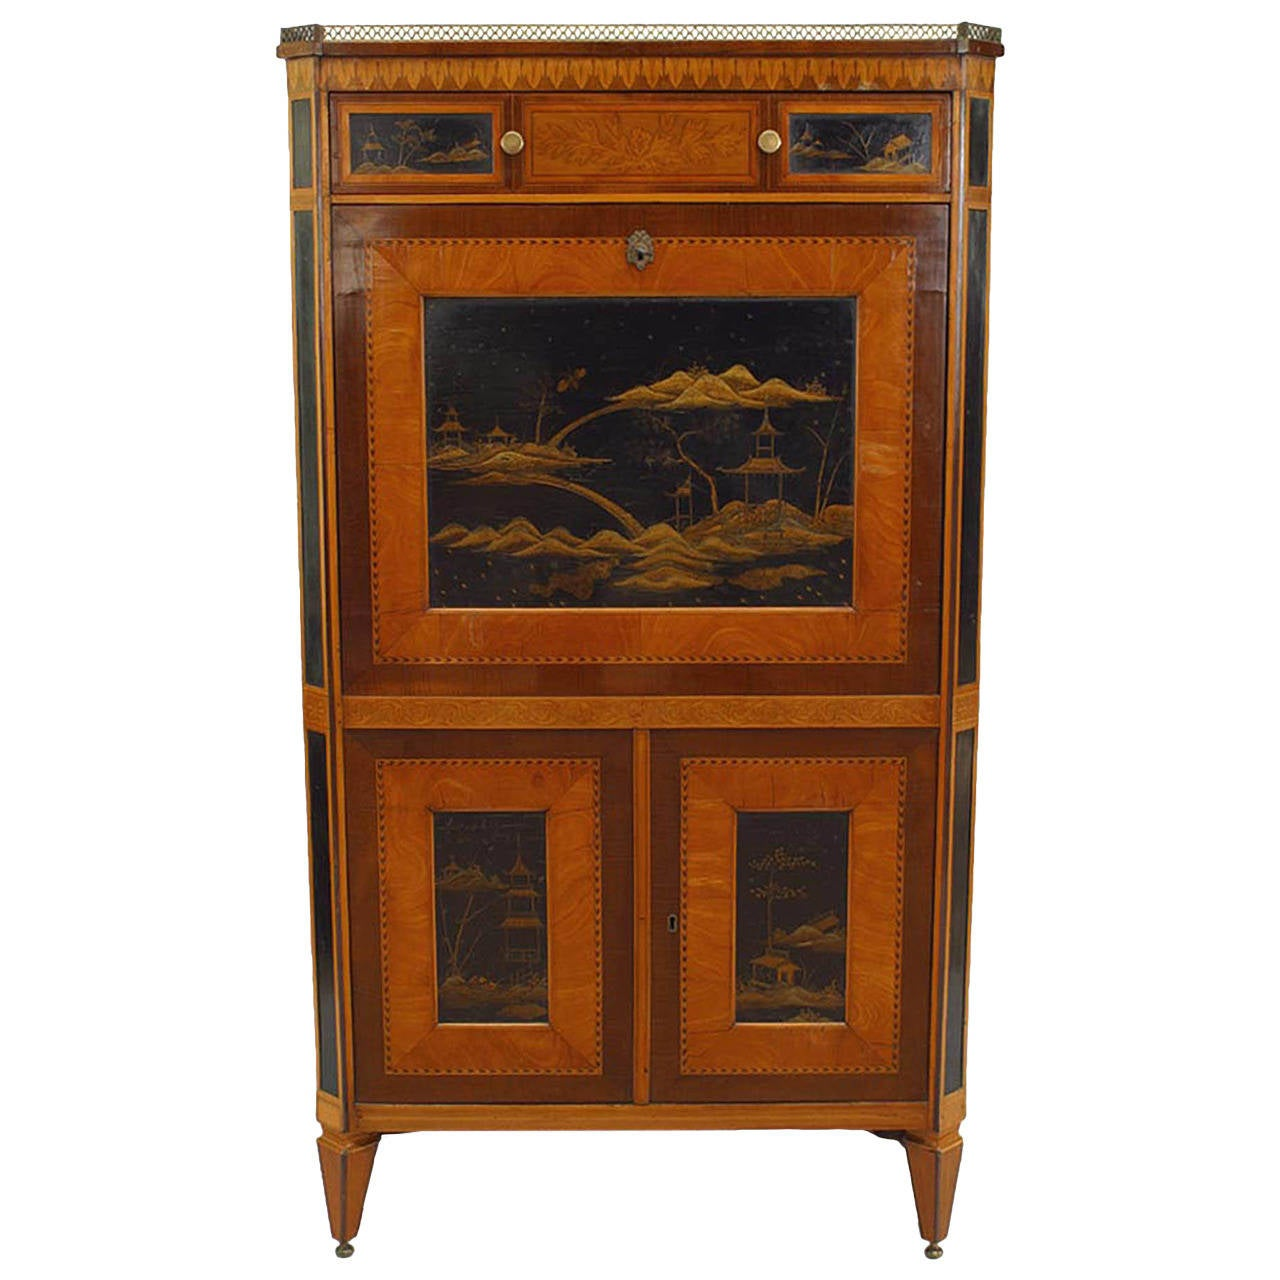 Turn of the 19th Cent. Continental Chinoiserie Drop Front Desk